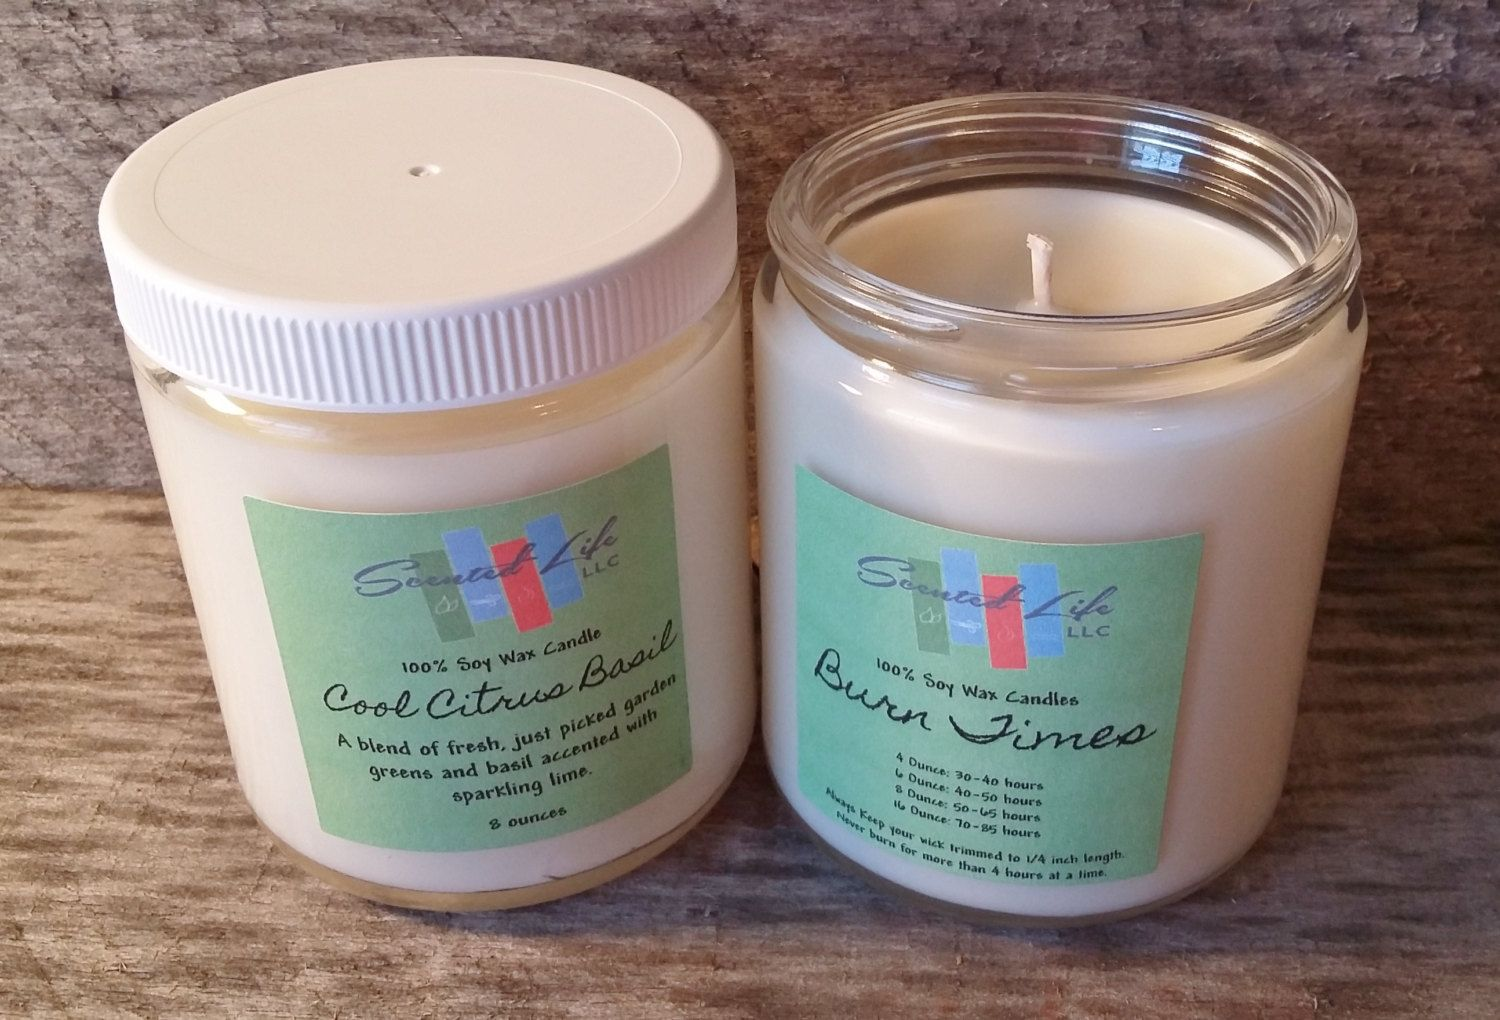 Cool Citrus Basil Candle, Soy Candle, Eco Friendly Candle, 8 Ounce Candle, Natural Candle, Container Candles, Home Decor, Gift Ideas by ScentedLife on Etsy